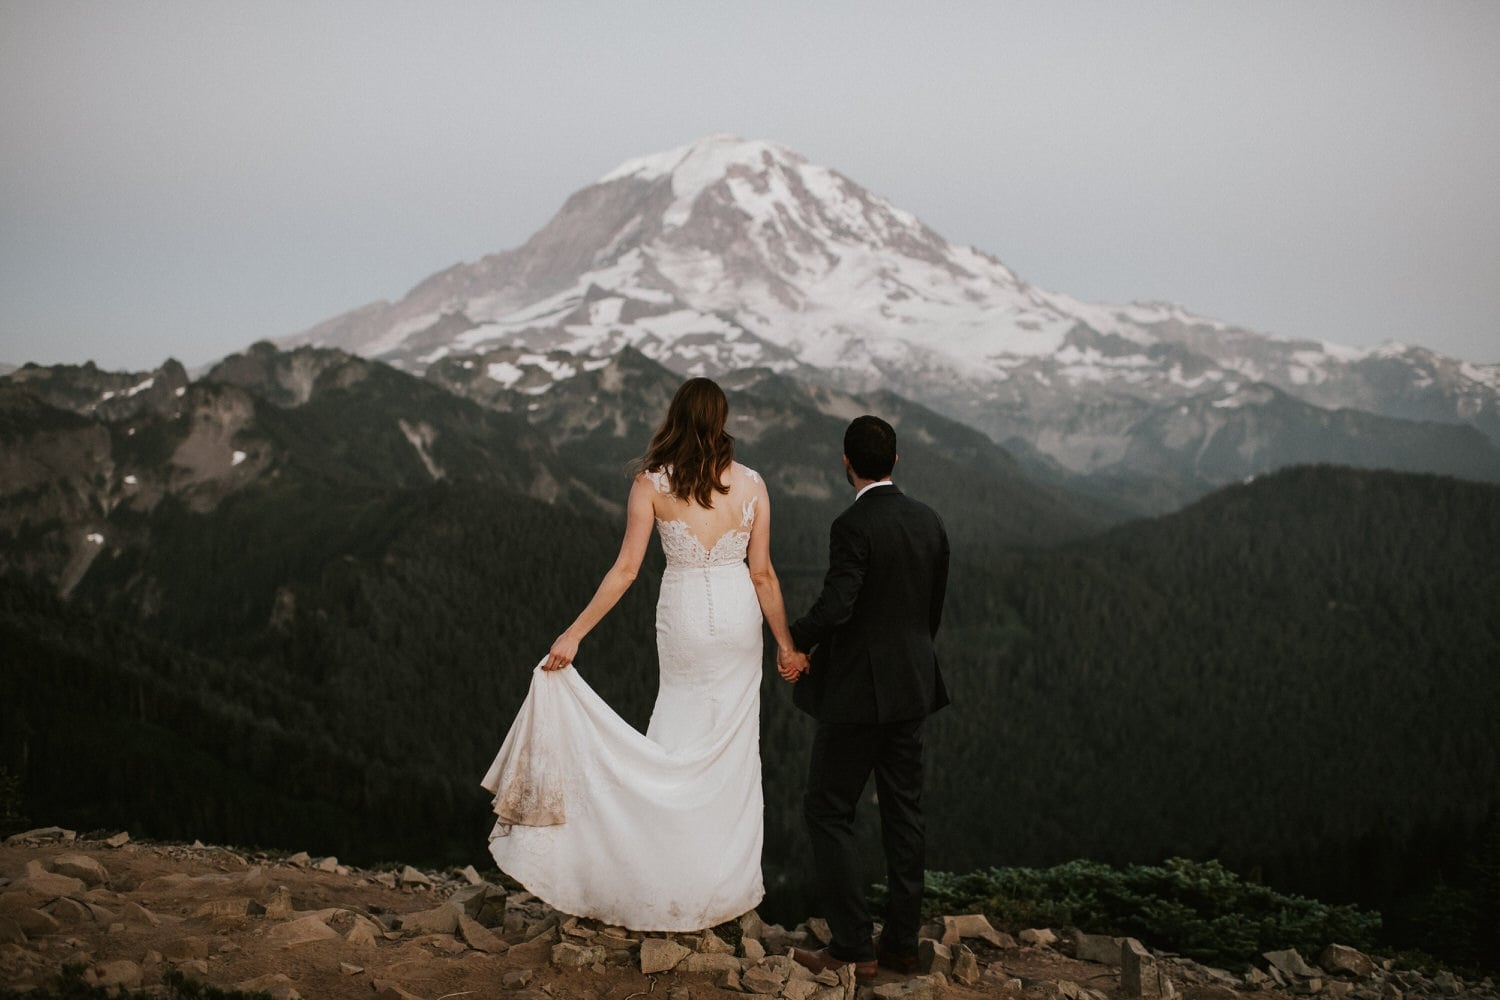 Wedding photos at mount rainier one of the best places to elope in washington state